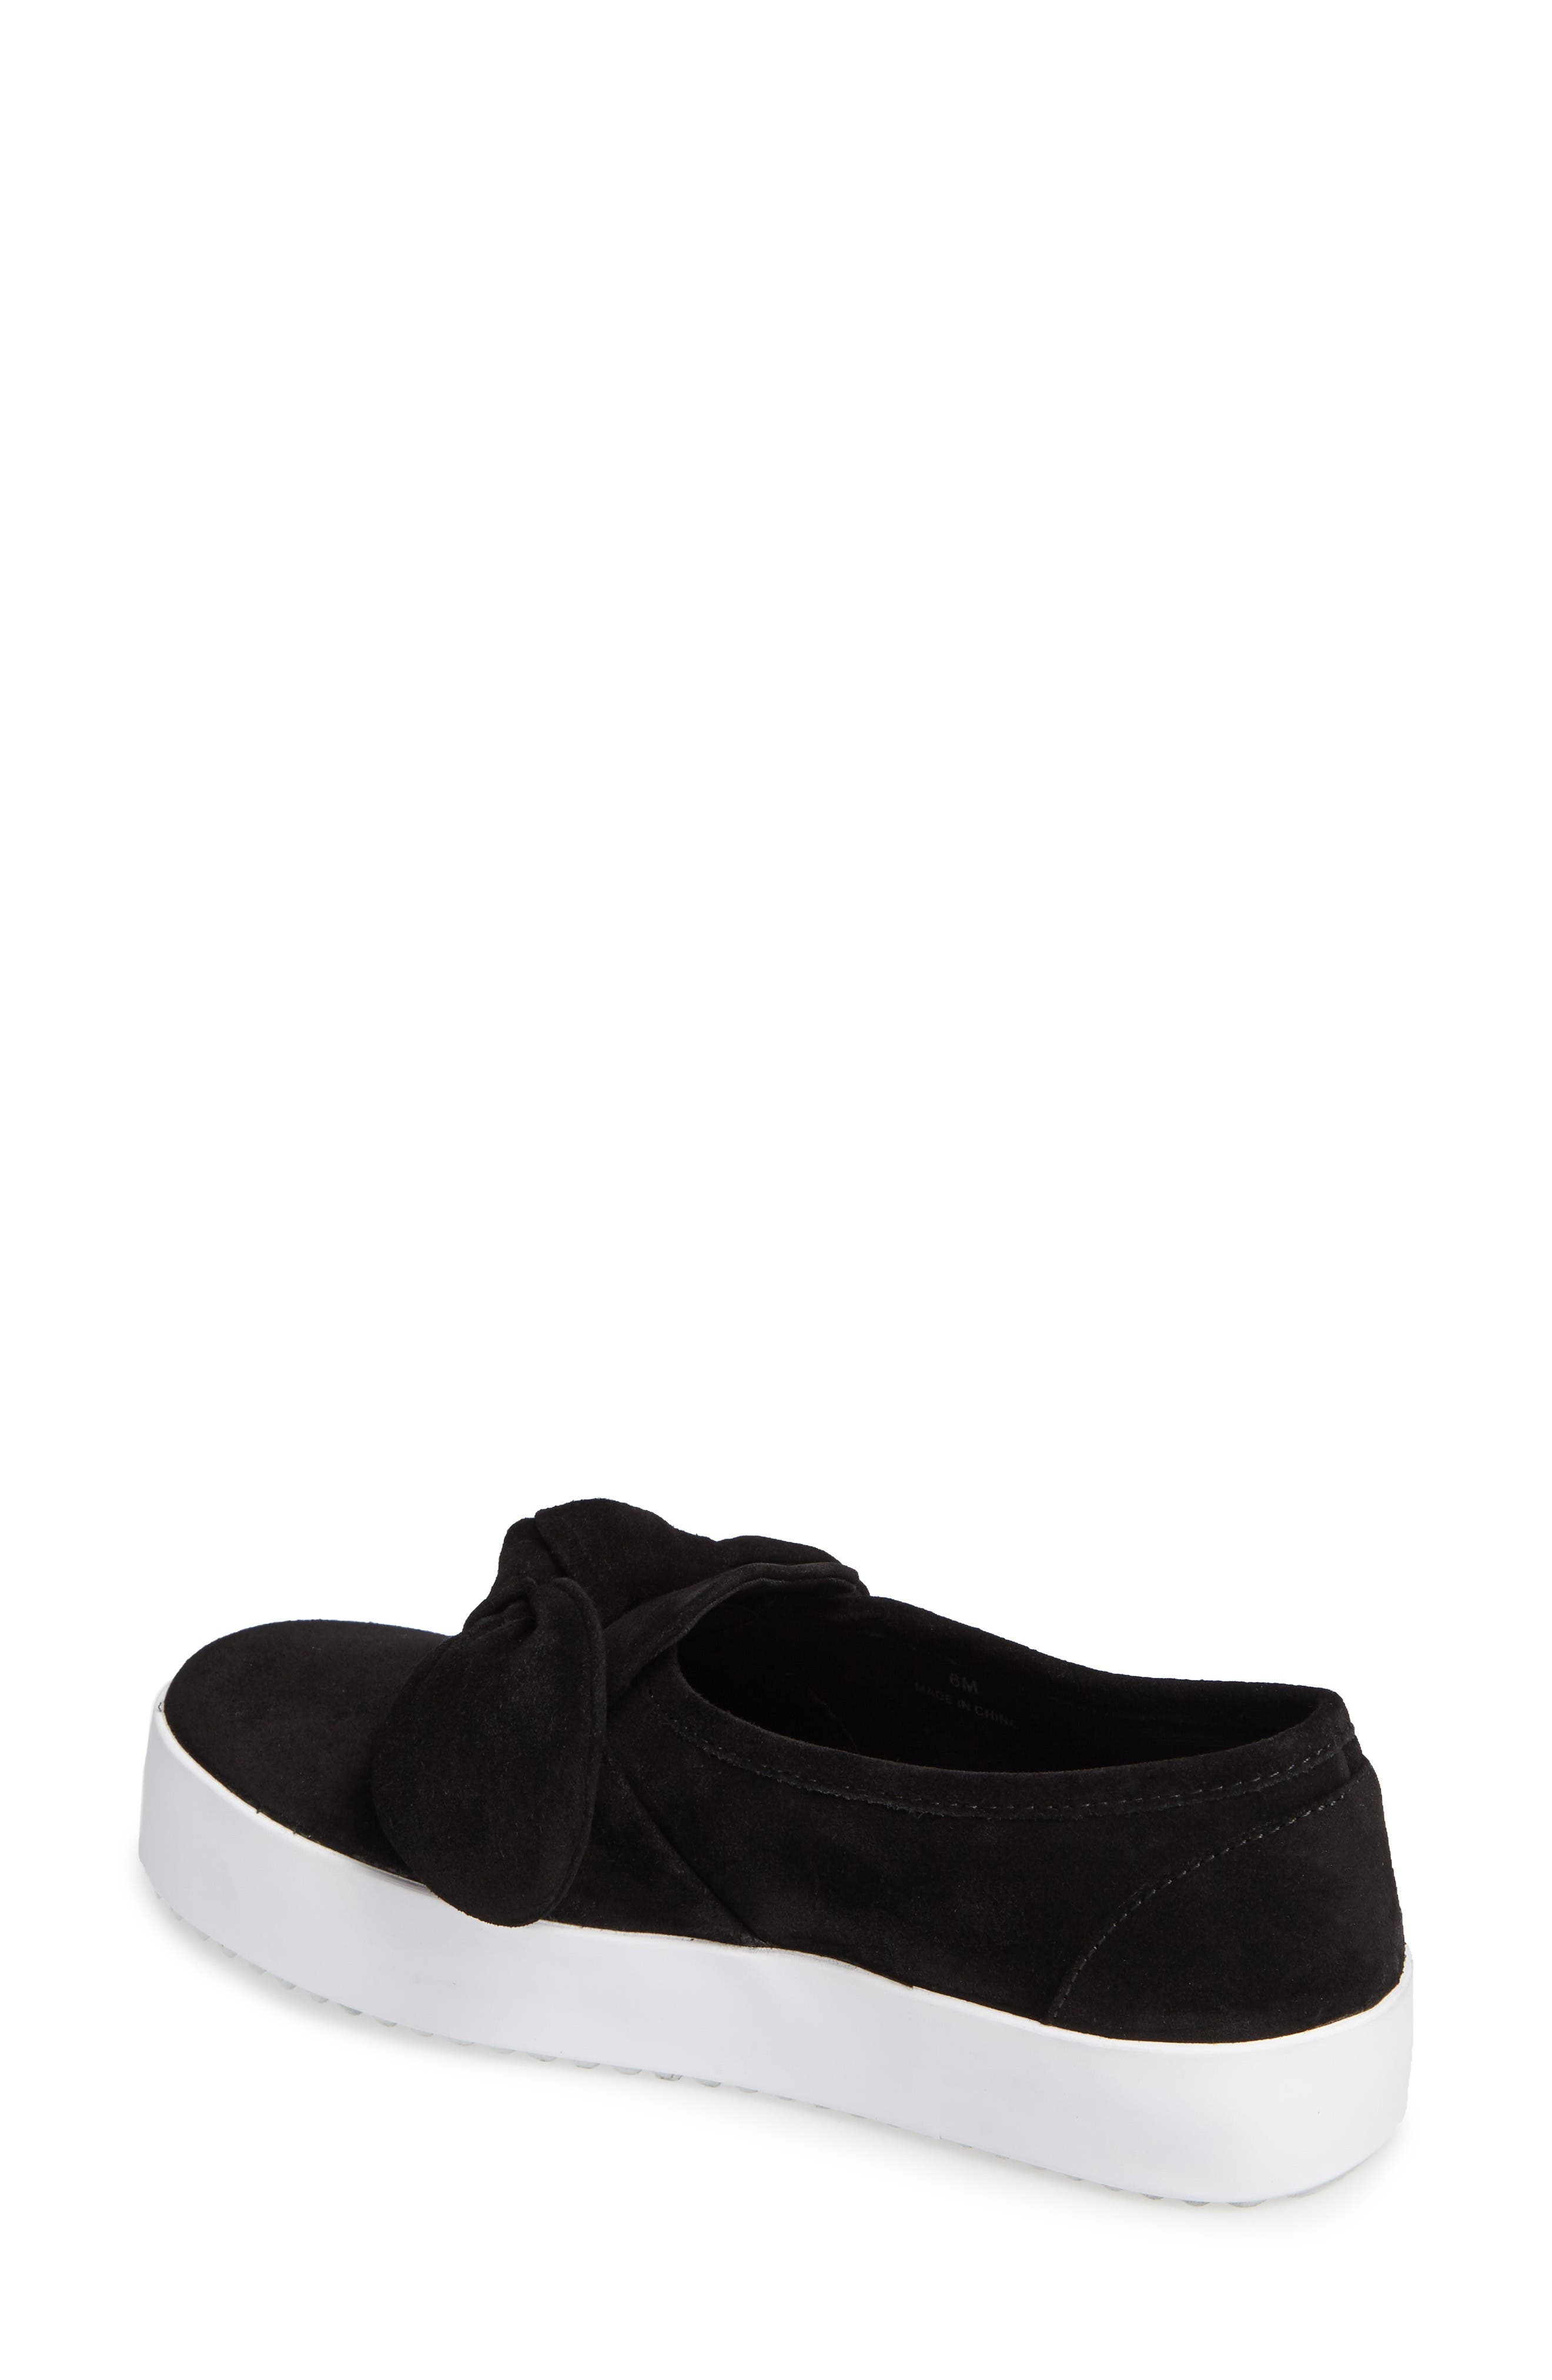 Stacey Bow Platform Sneaker,                             Alternate thumbnail 2, color,                             Black Oiled Suede